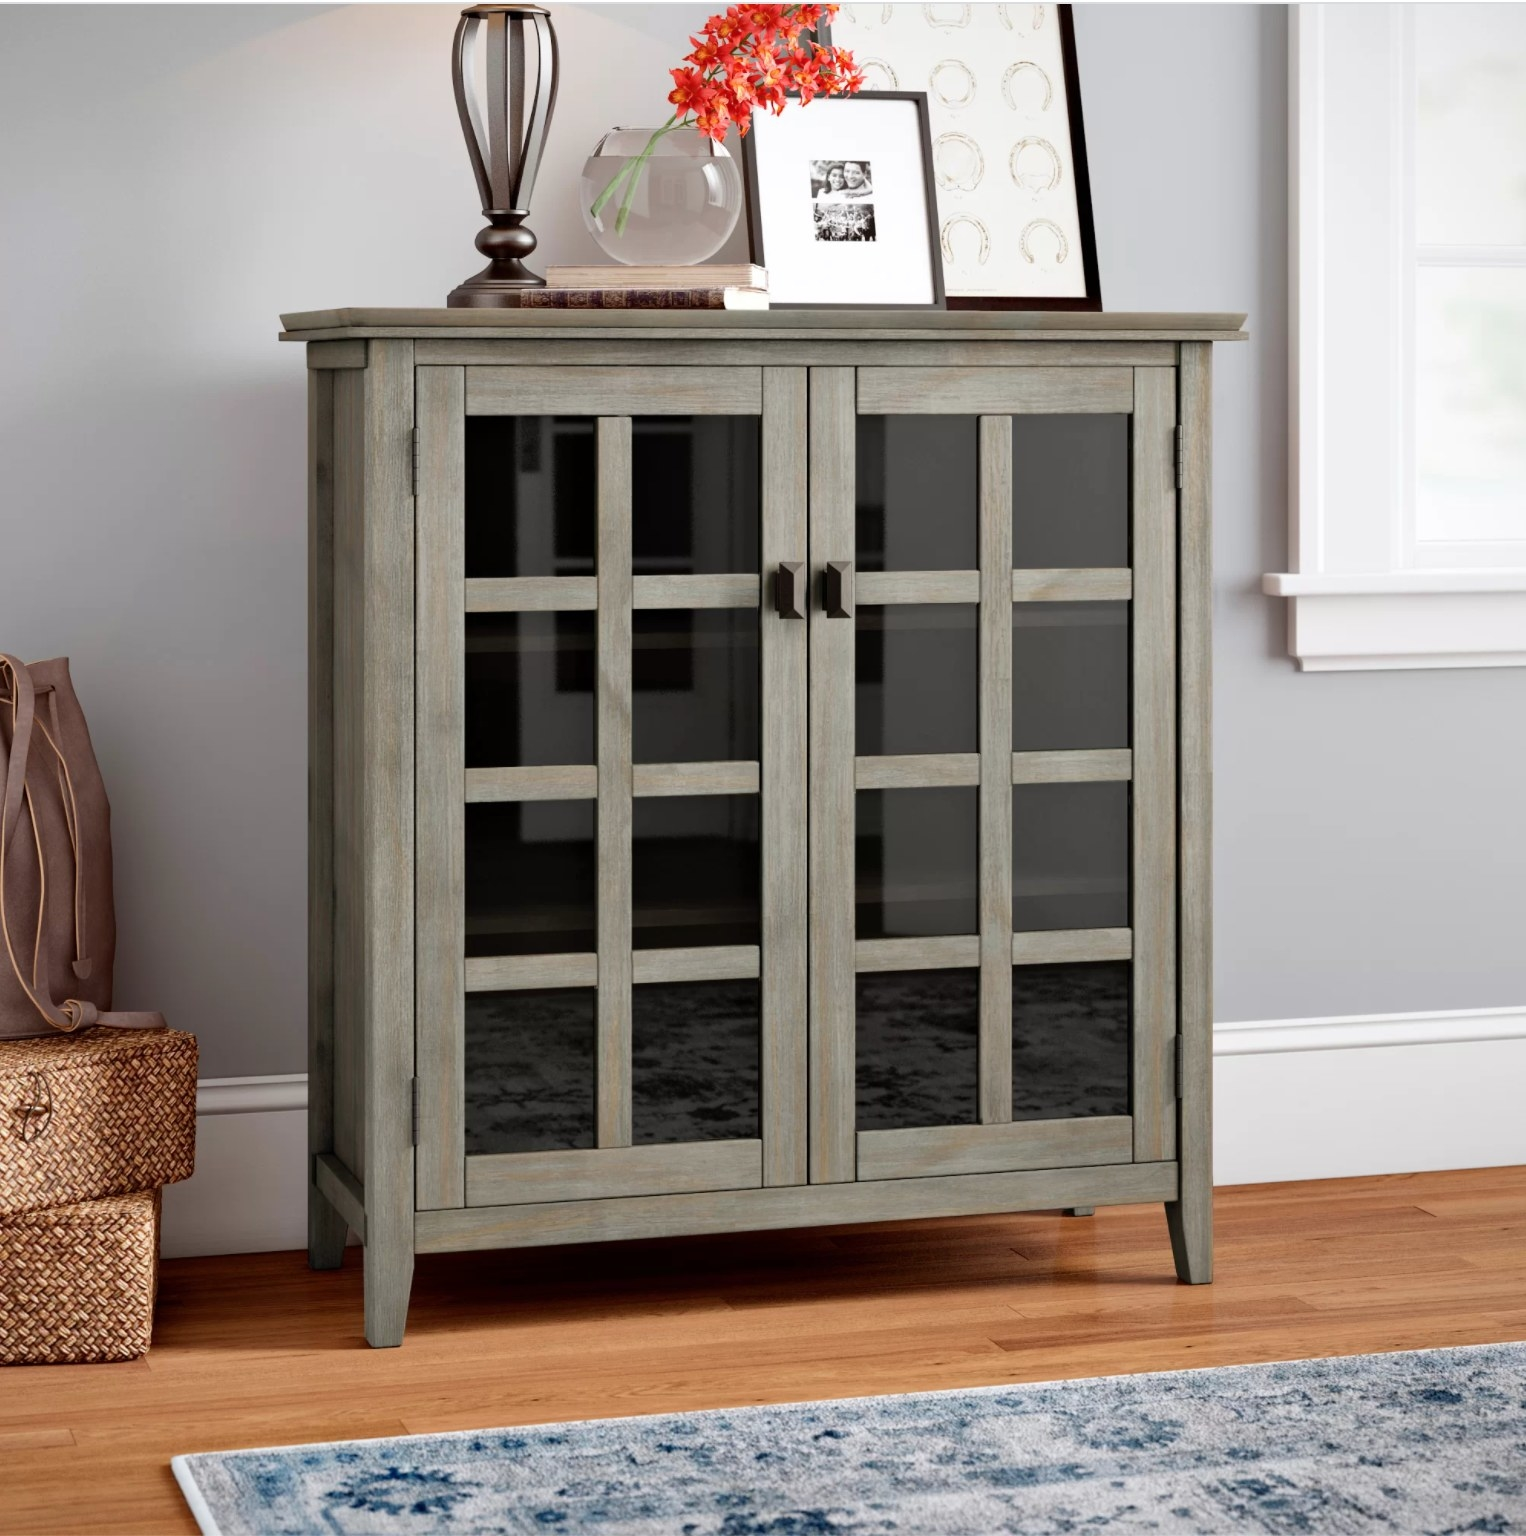 The cabinet in distressed gray